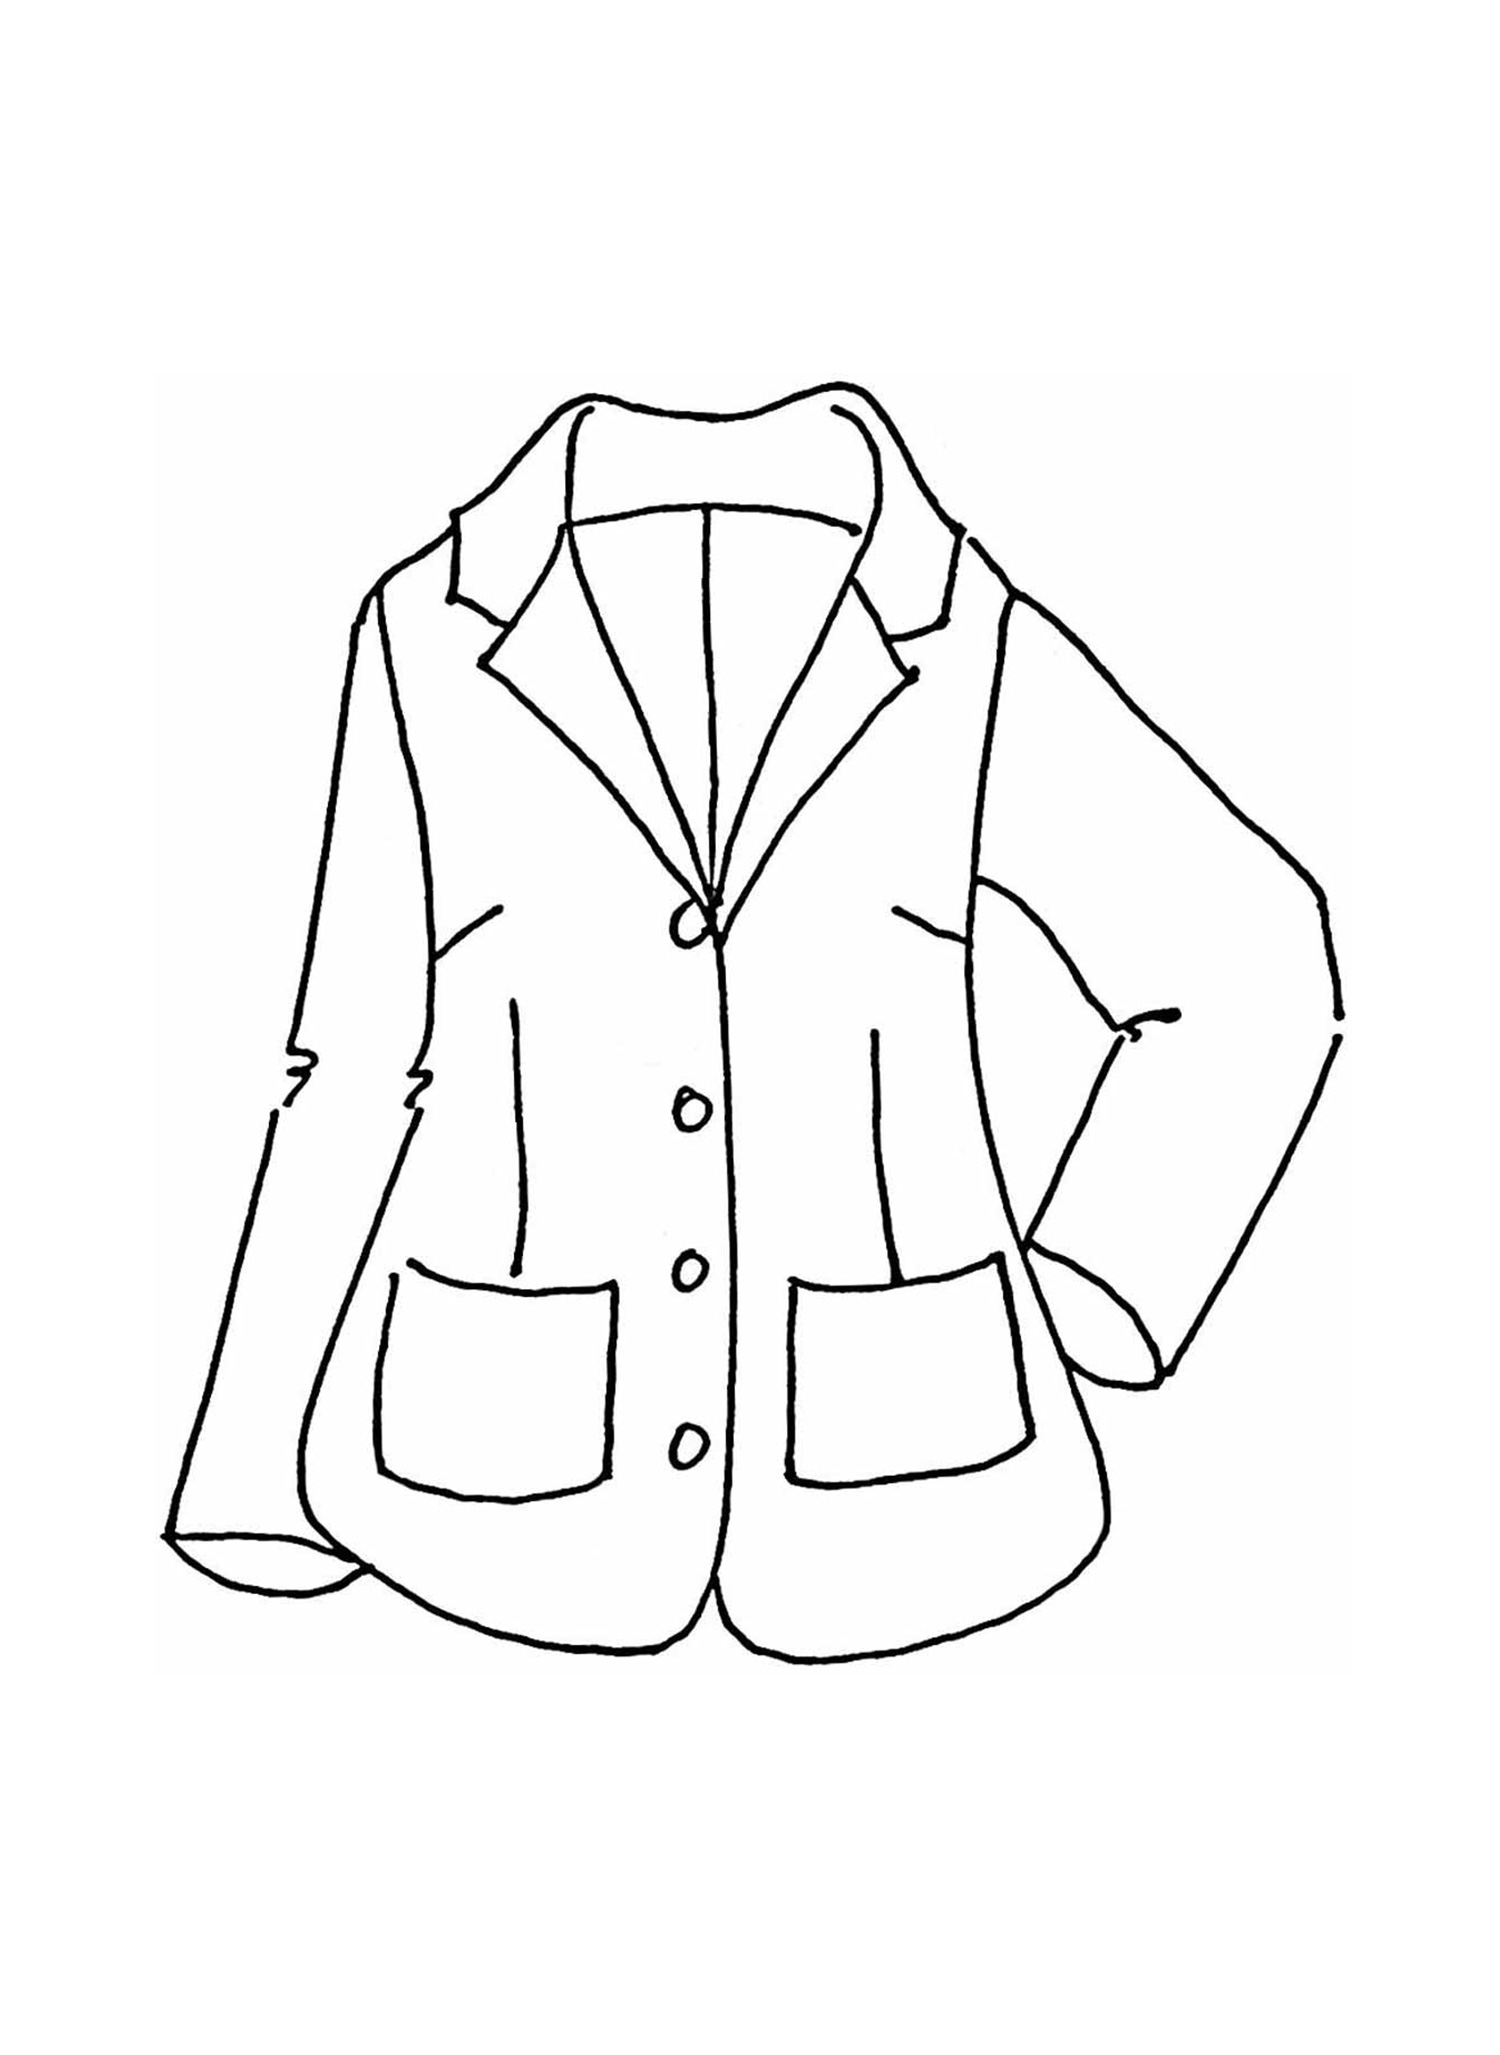 Travel Blazer sketch image